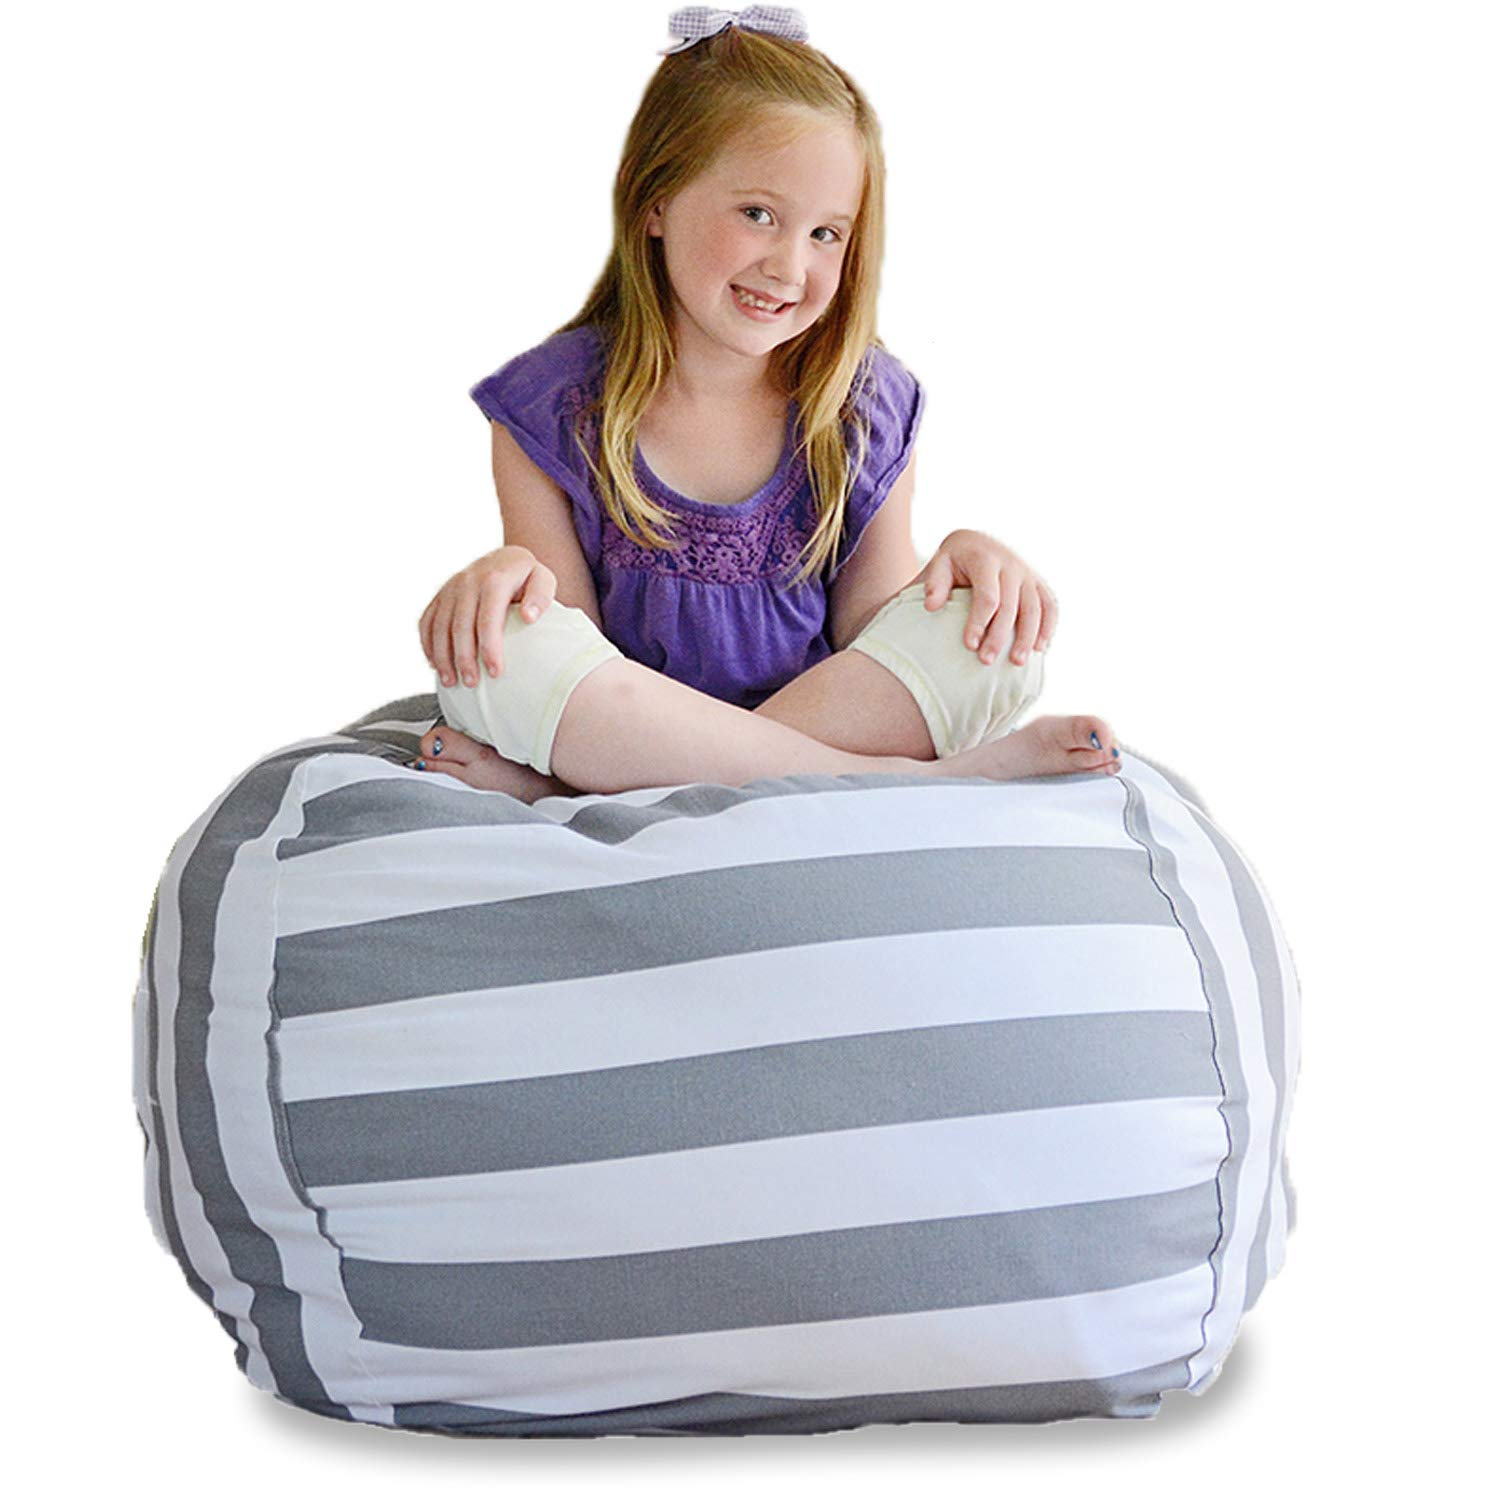 Creative QT Extra Large Stuff 'n Sit - Stuffed Animal Storage Bean Bag Chair for Kids - Pouf Ottoman for Toy Storage - Available in 2 Sizes and 5 Patterns (38'', Grey/White Stripe)